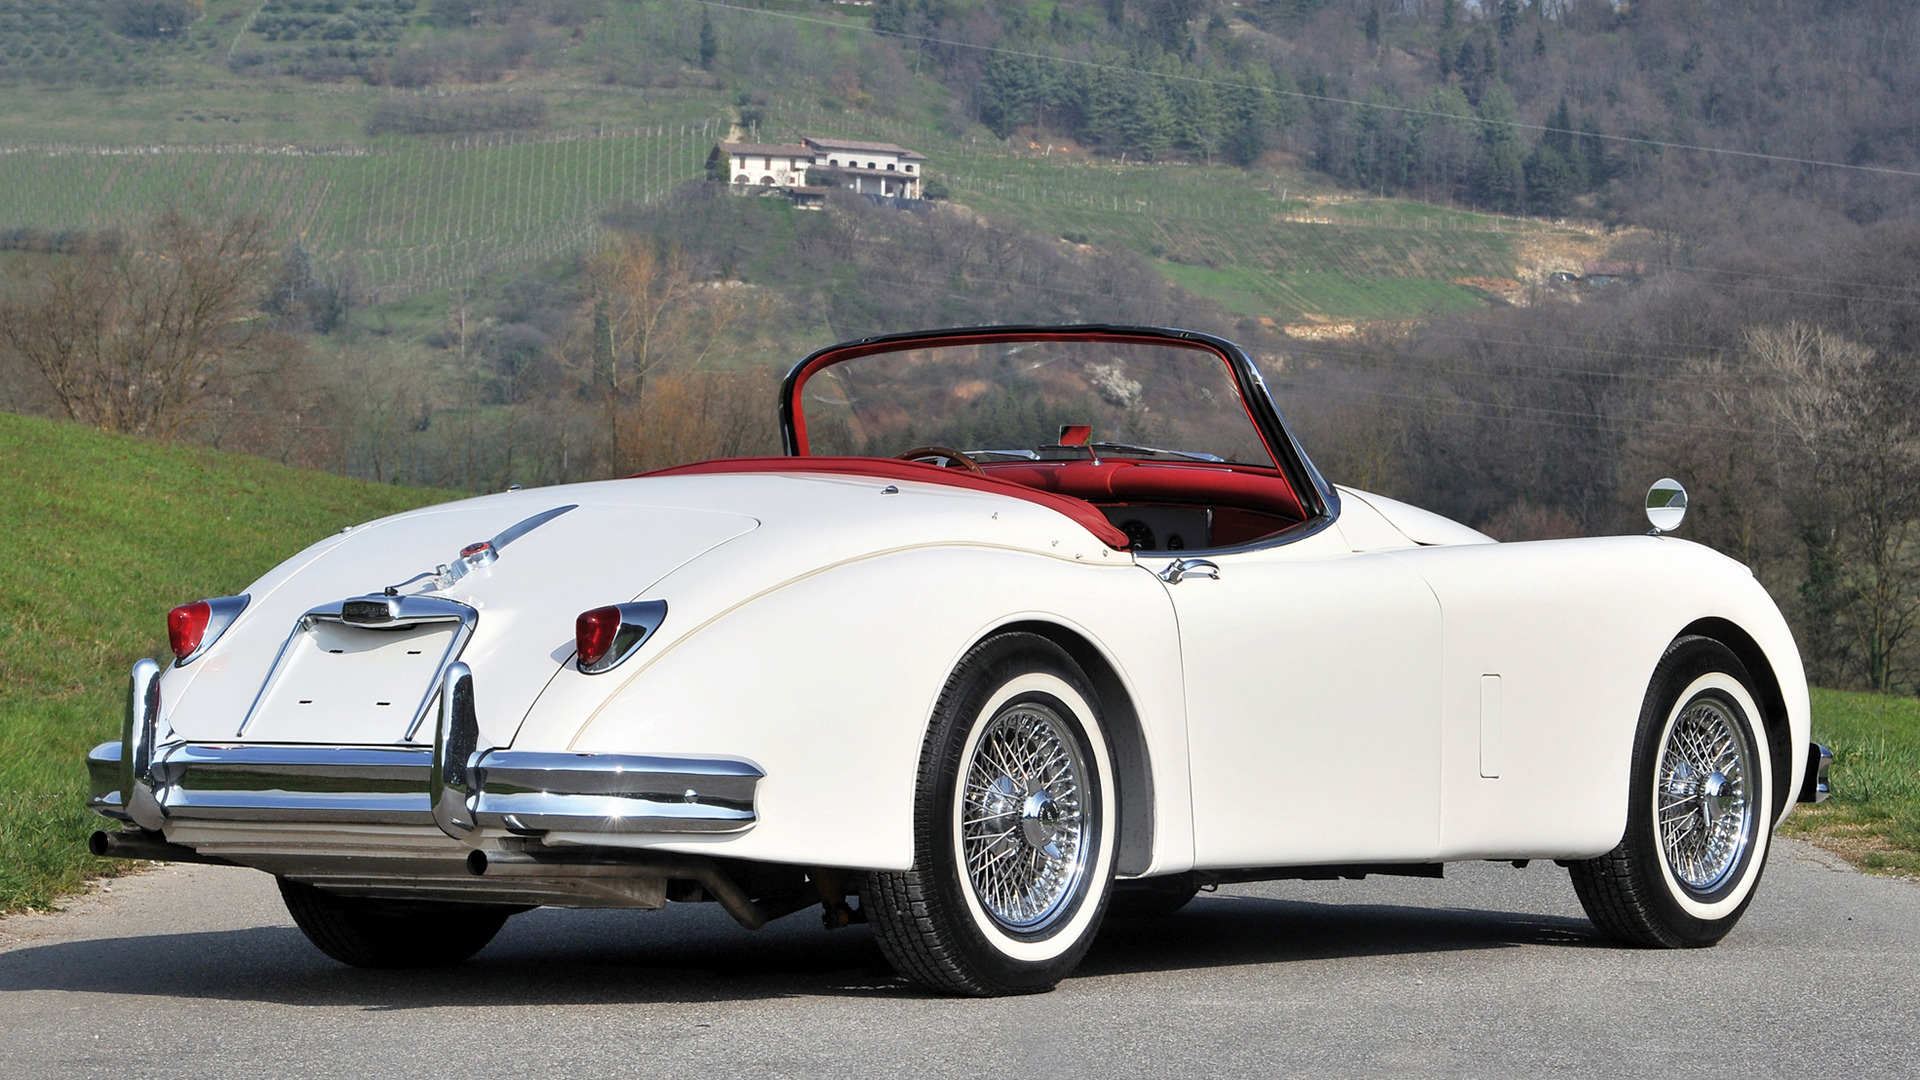 Jaguar XK150 Open Two-seater (1958) Wallpapers and HD Images - Car Pixel